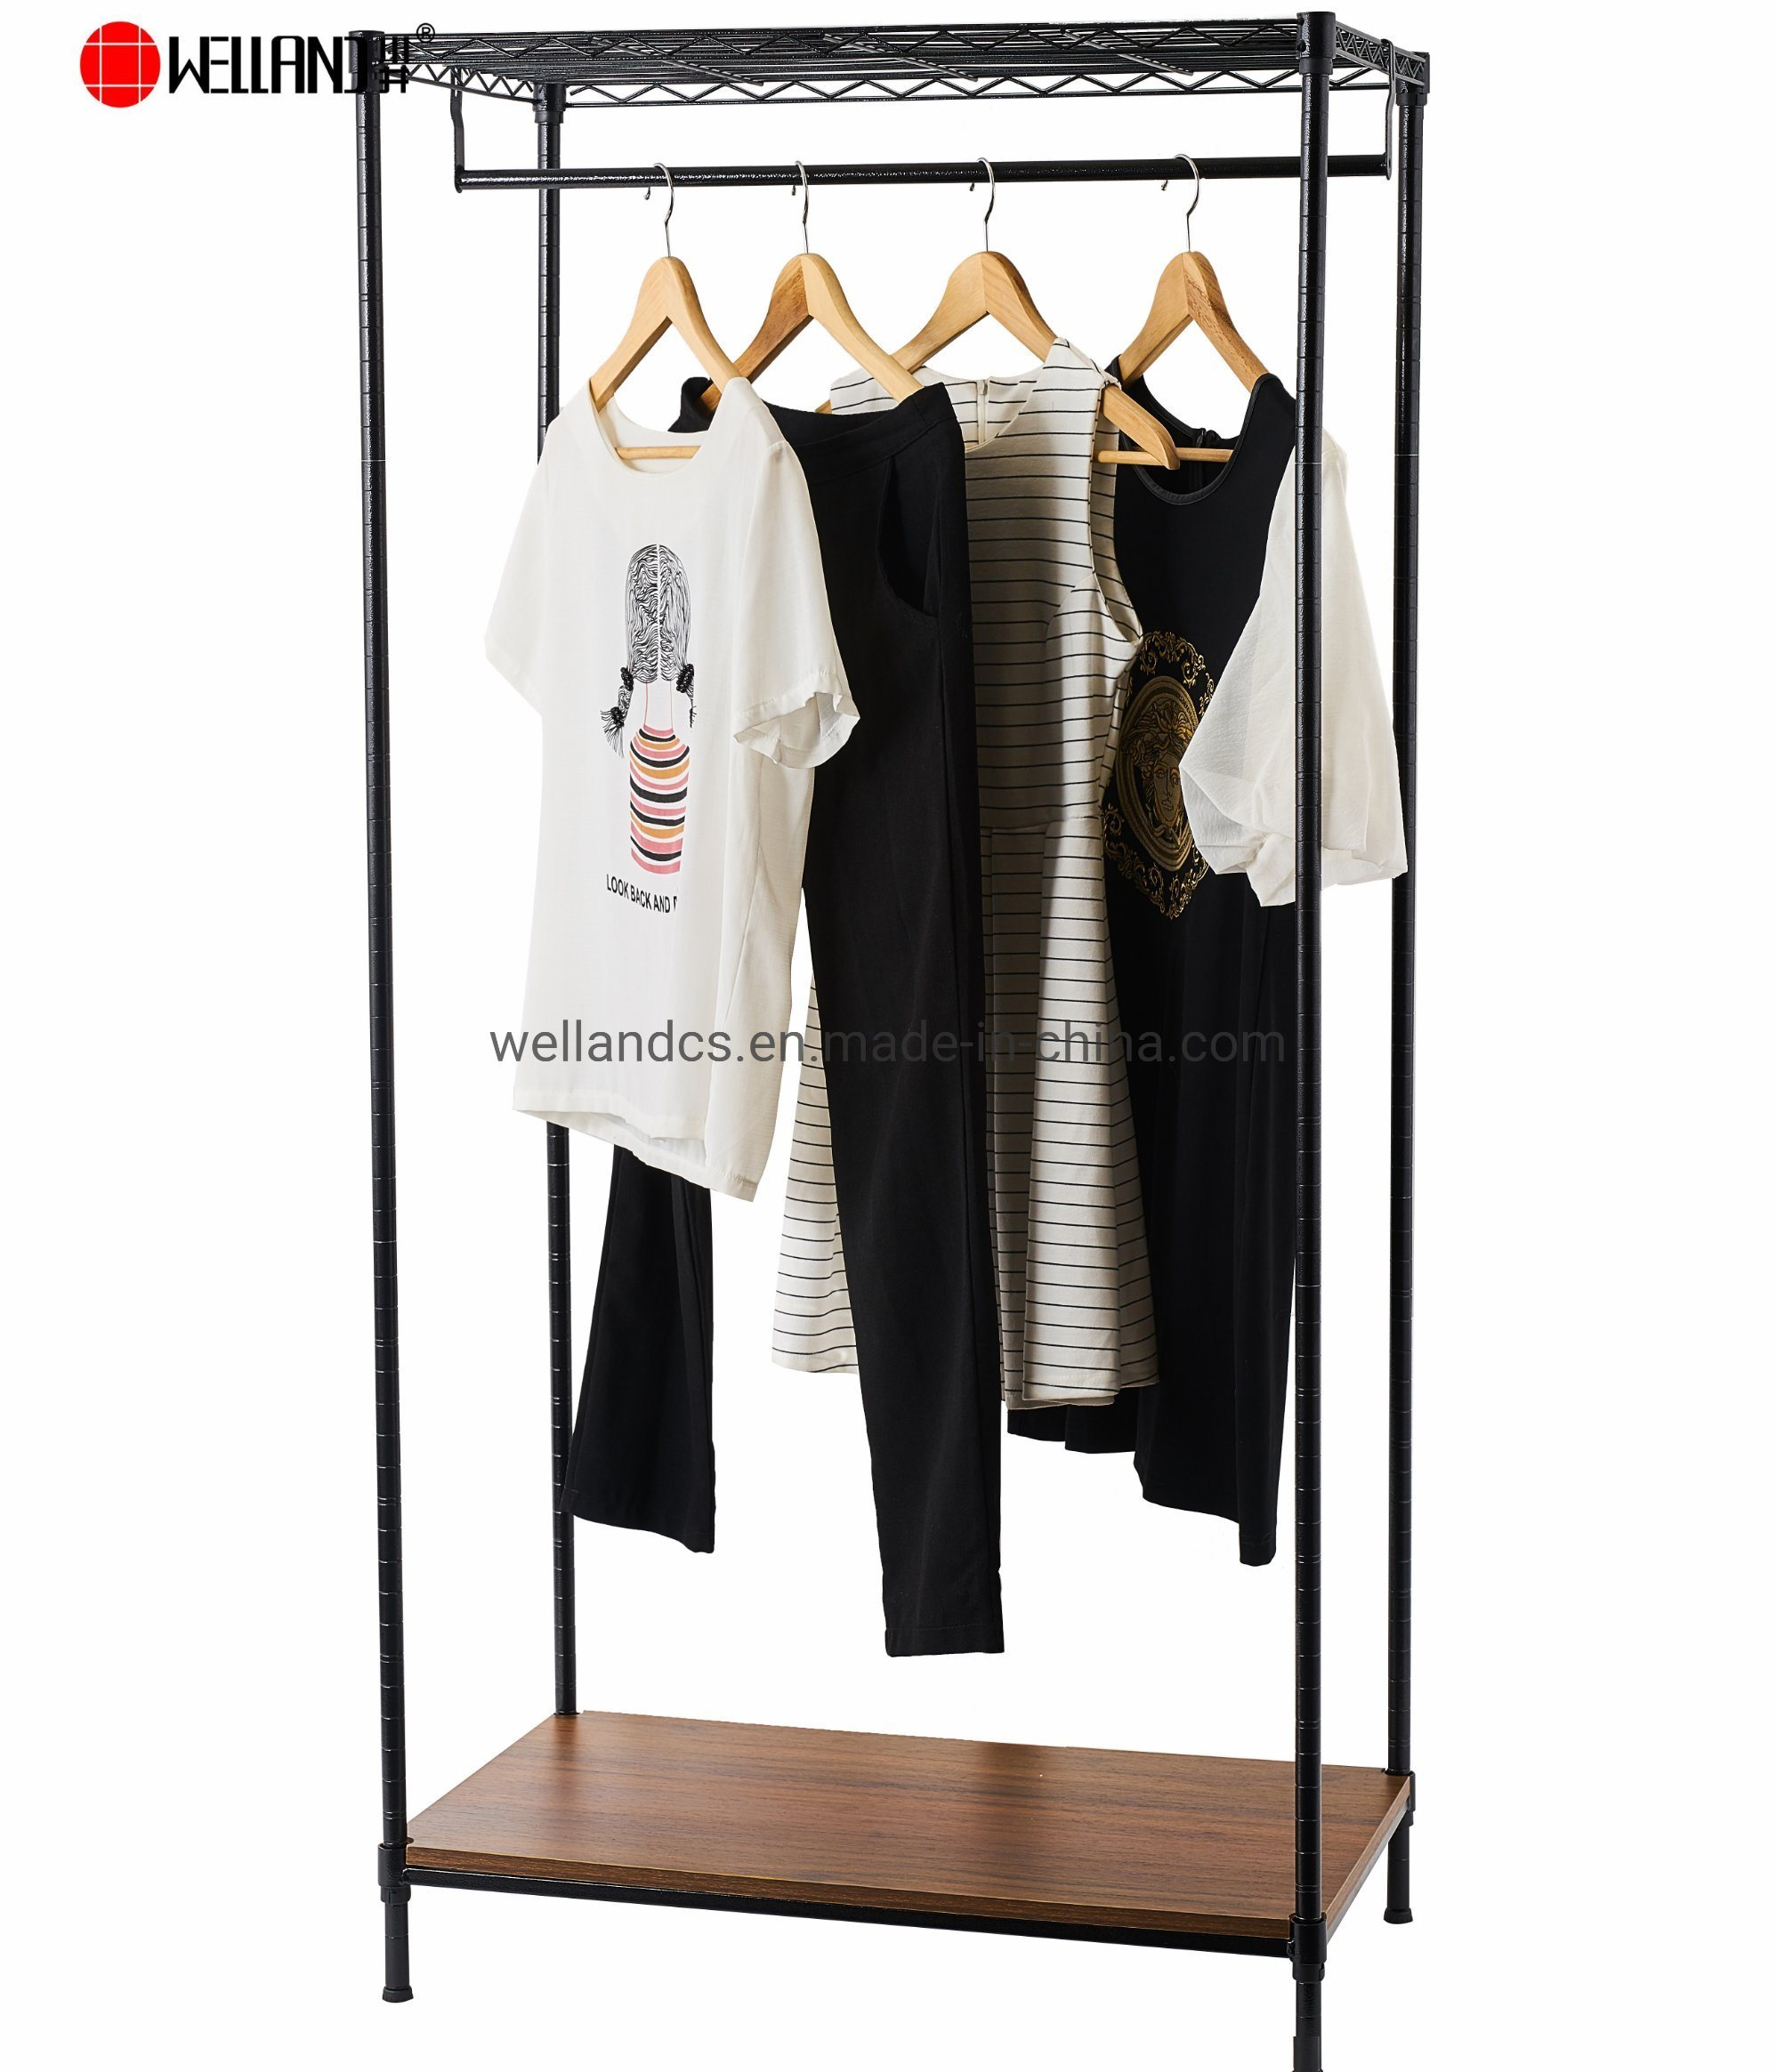 New Design Free Standing Sturdy Clothes Rack 2 Tiers Diy